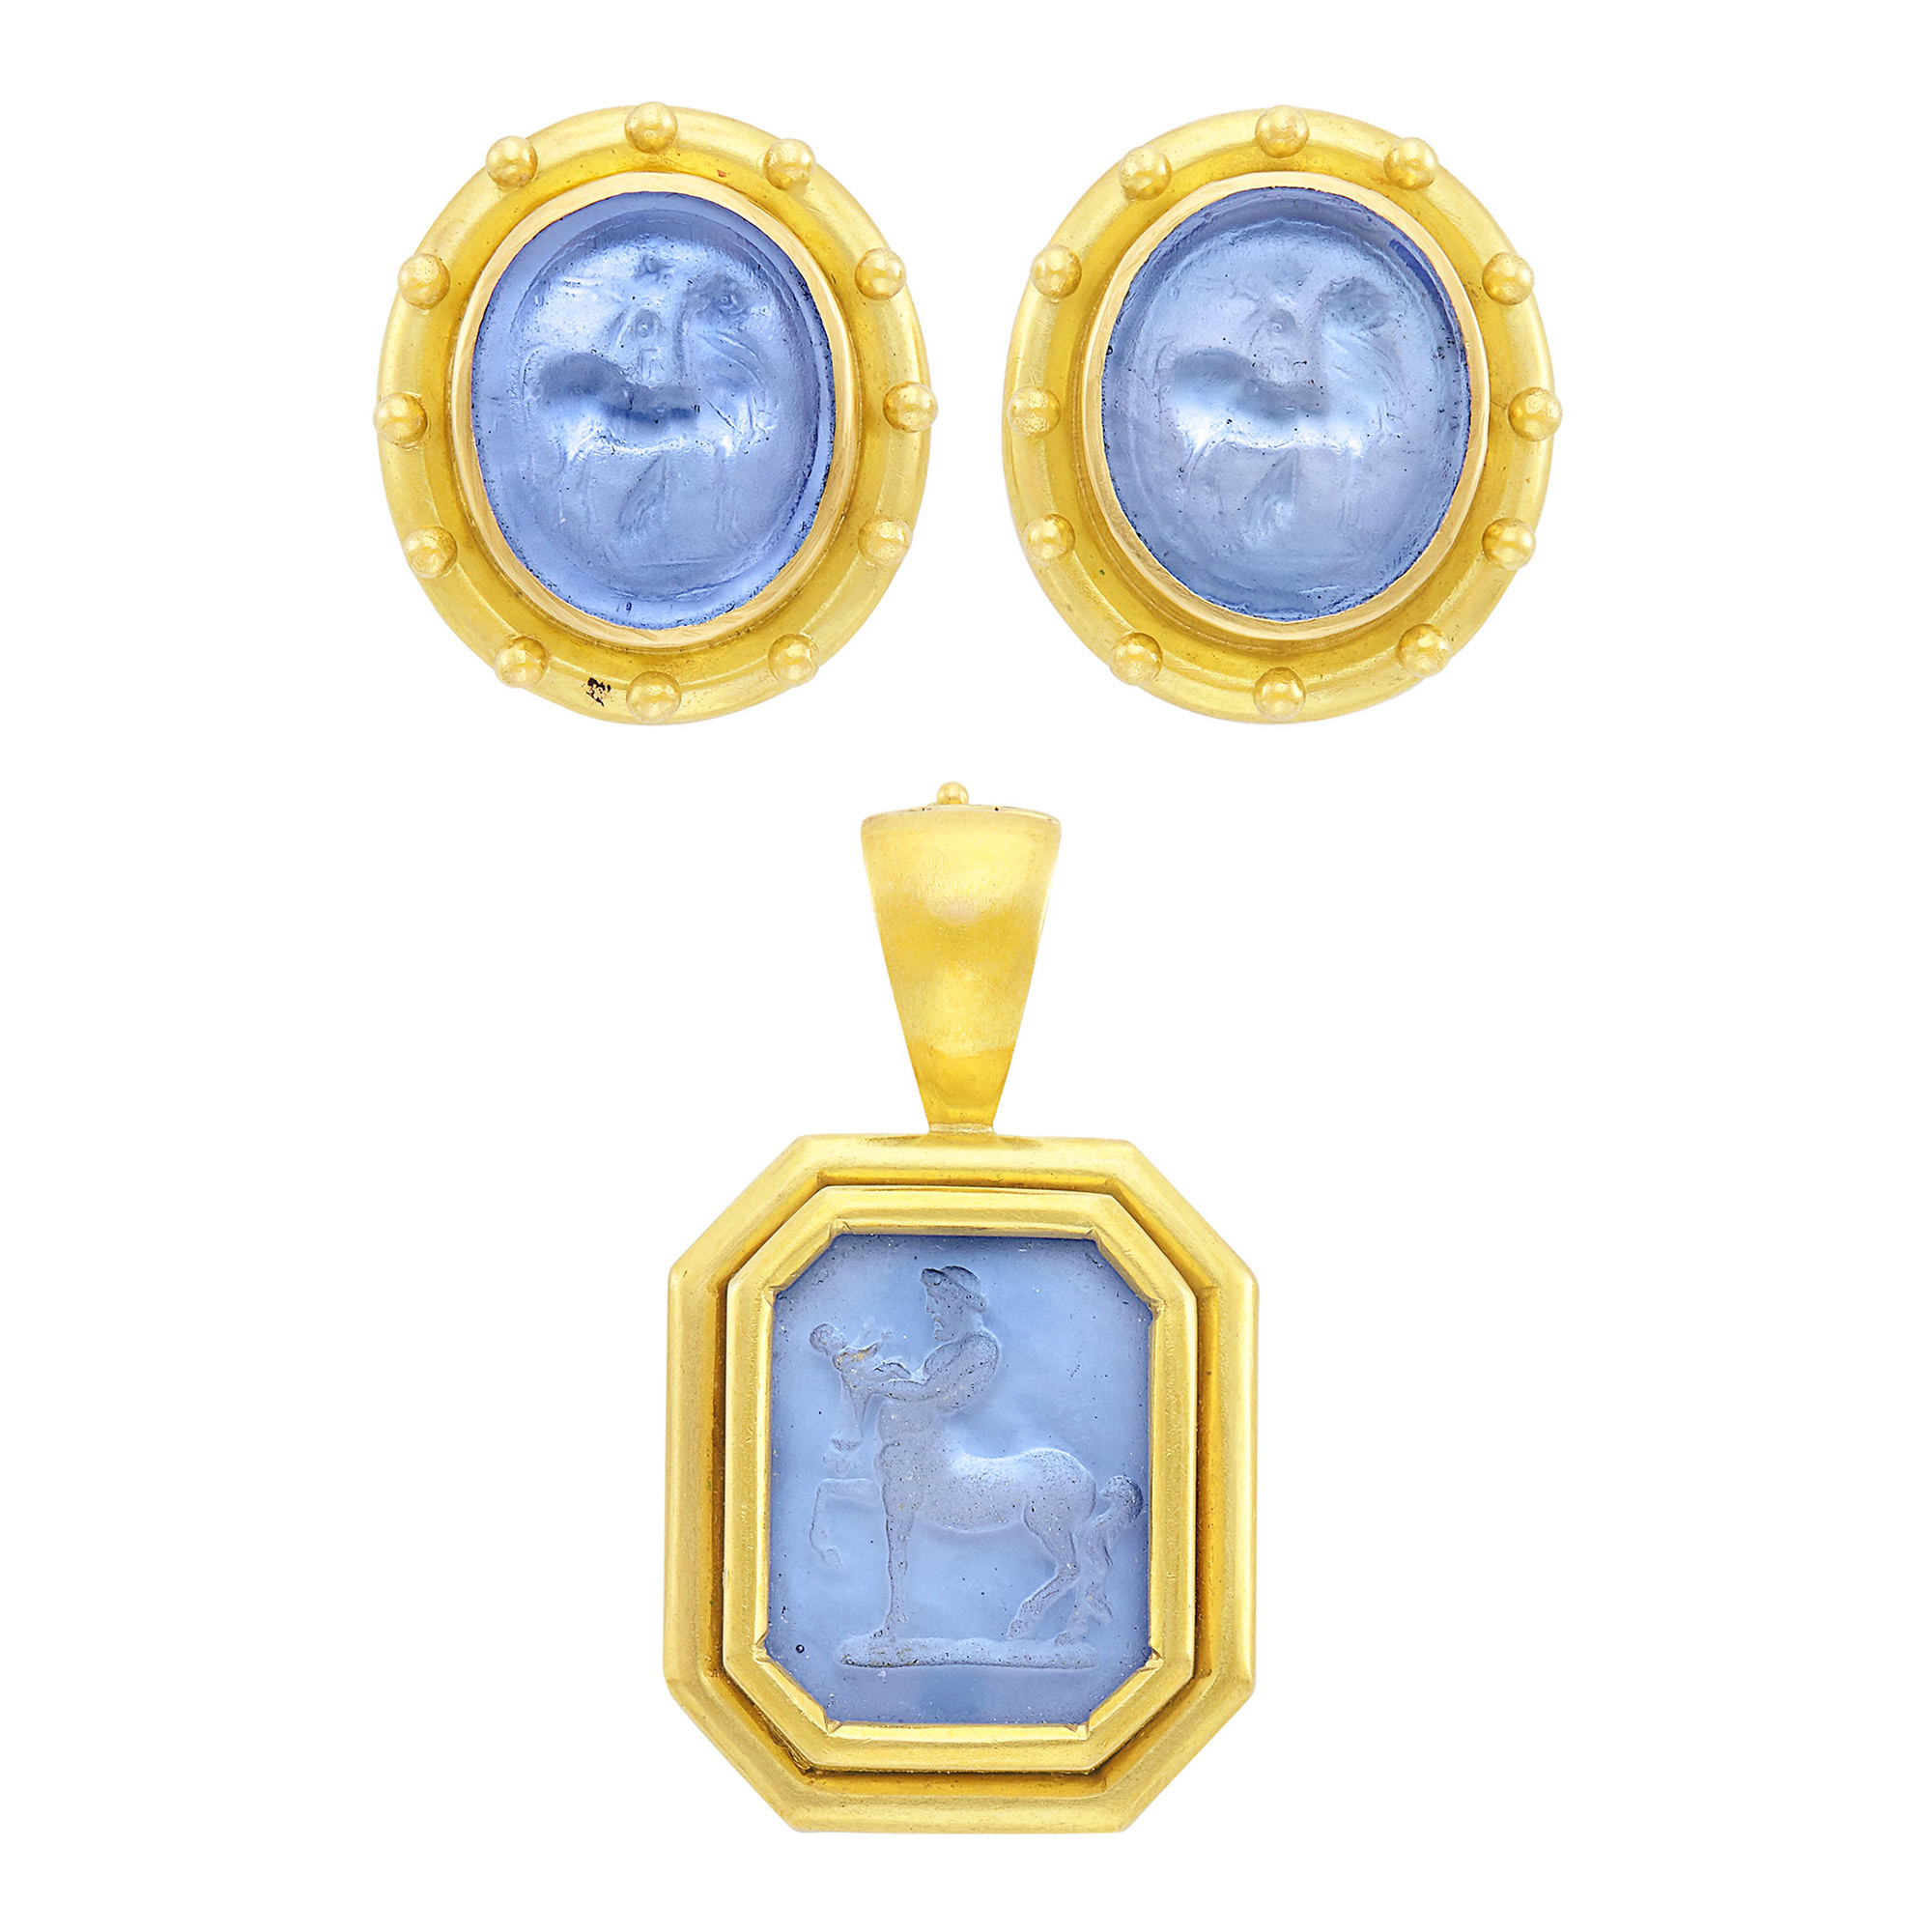 Lot image - Pair of Gold and Blue Glass Cameo Earclips and Blue Glass Intaglio Pendant, Elizabeth Locke